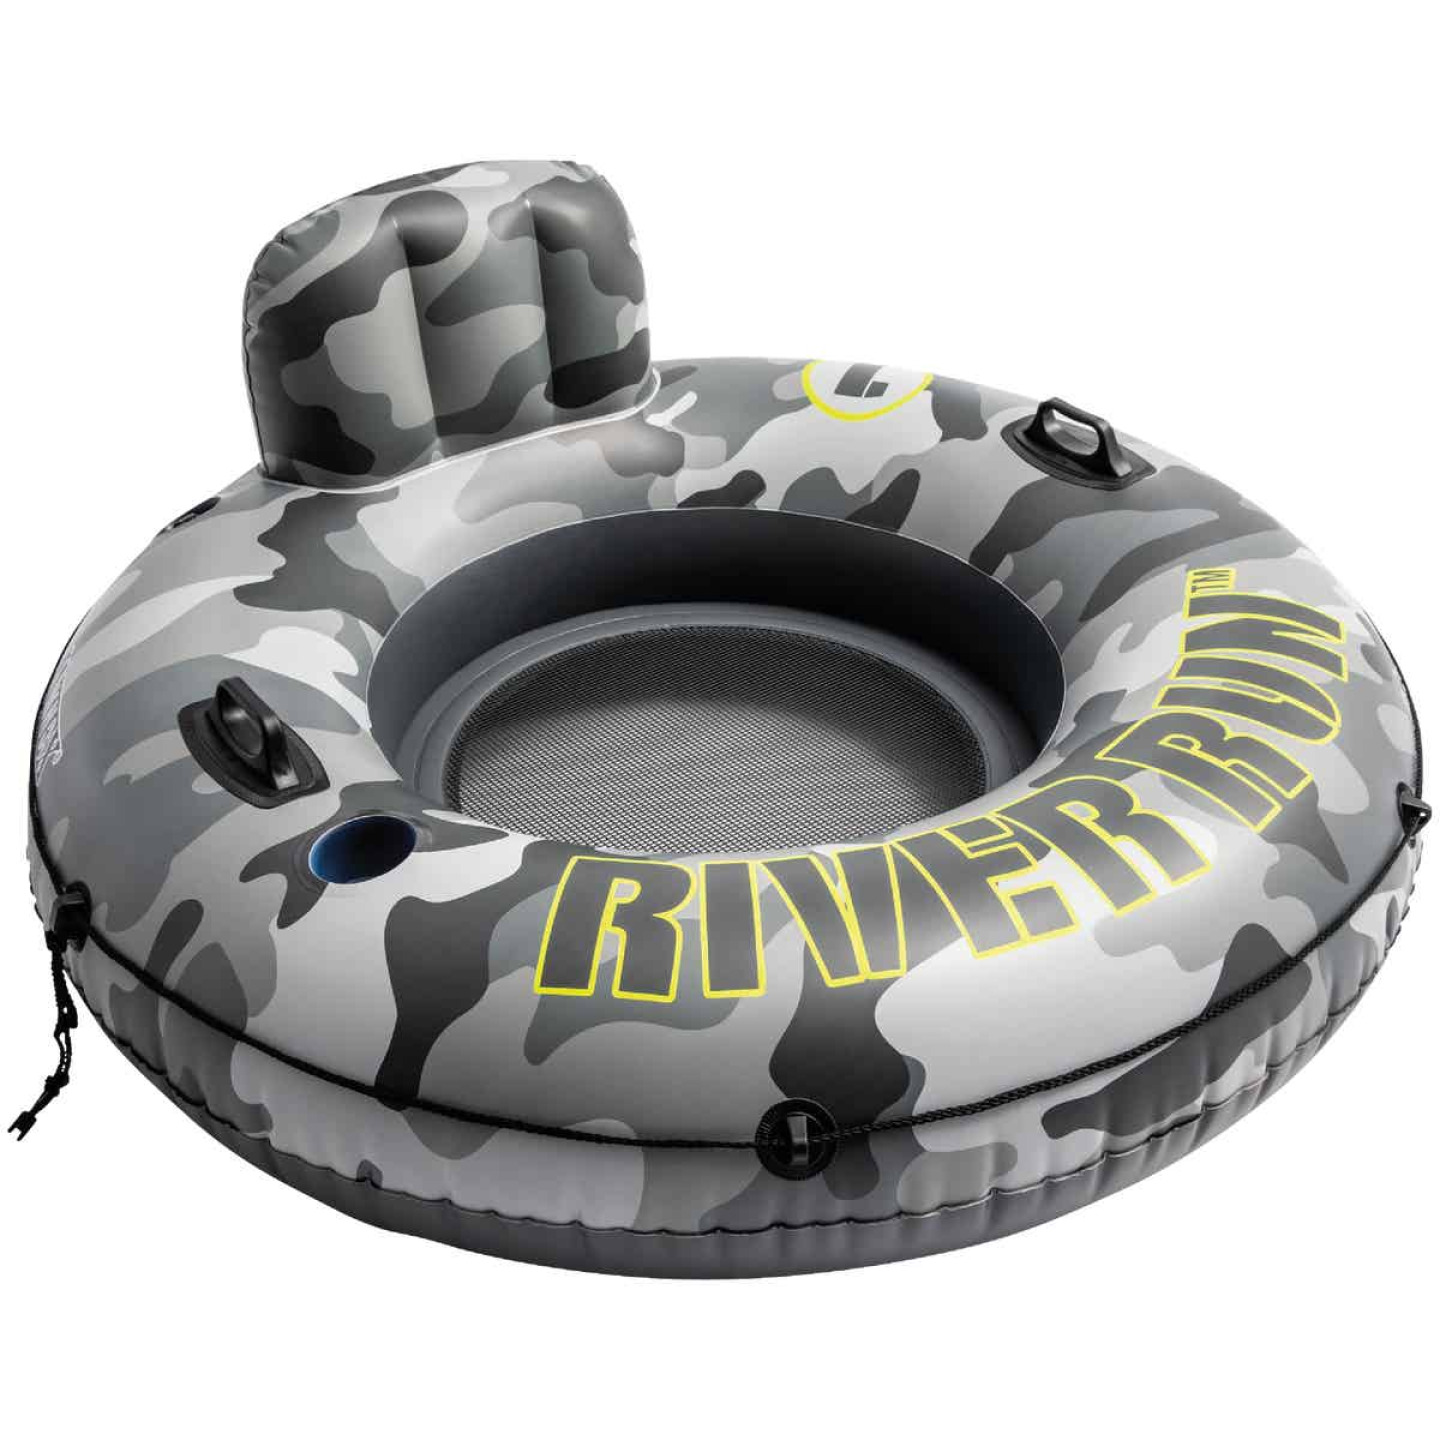 Intex River Run 53 In. Dia. Tube Float, Gray & Black Camo Image 1